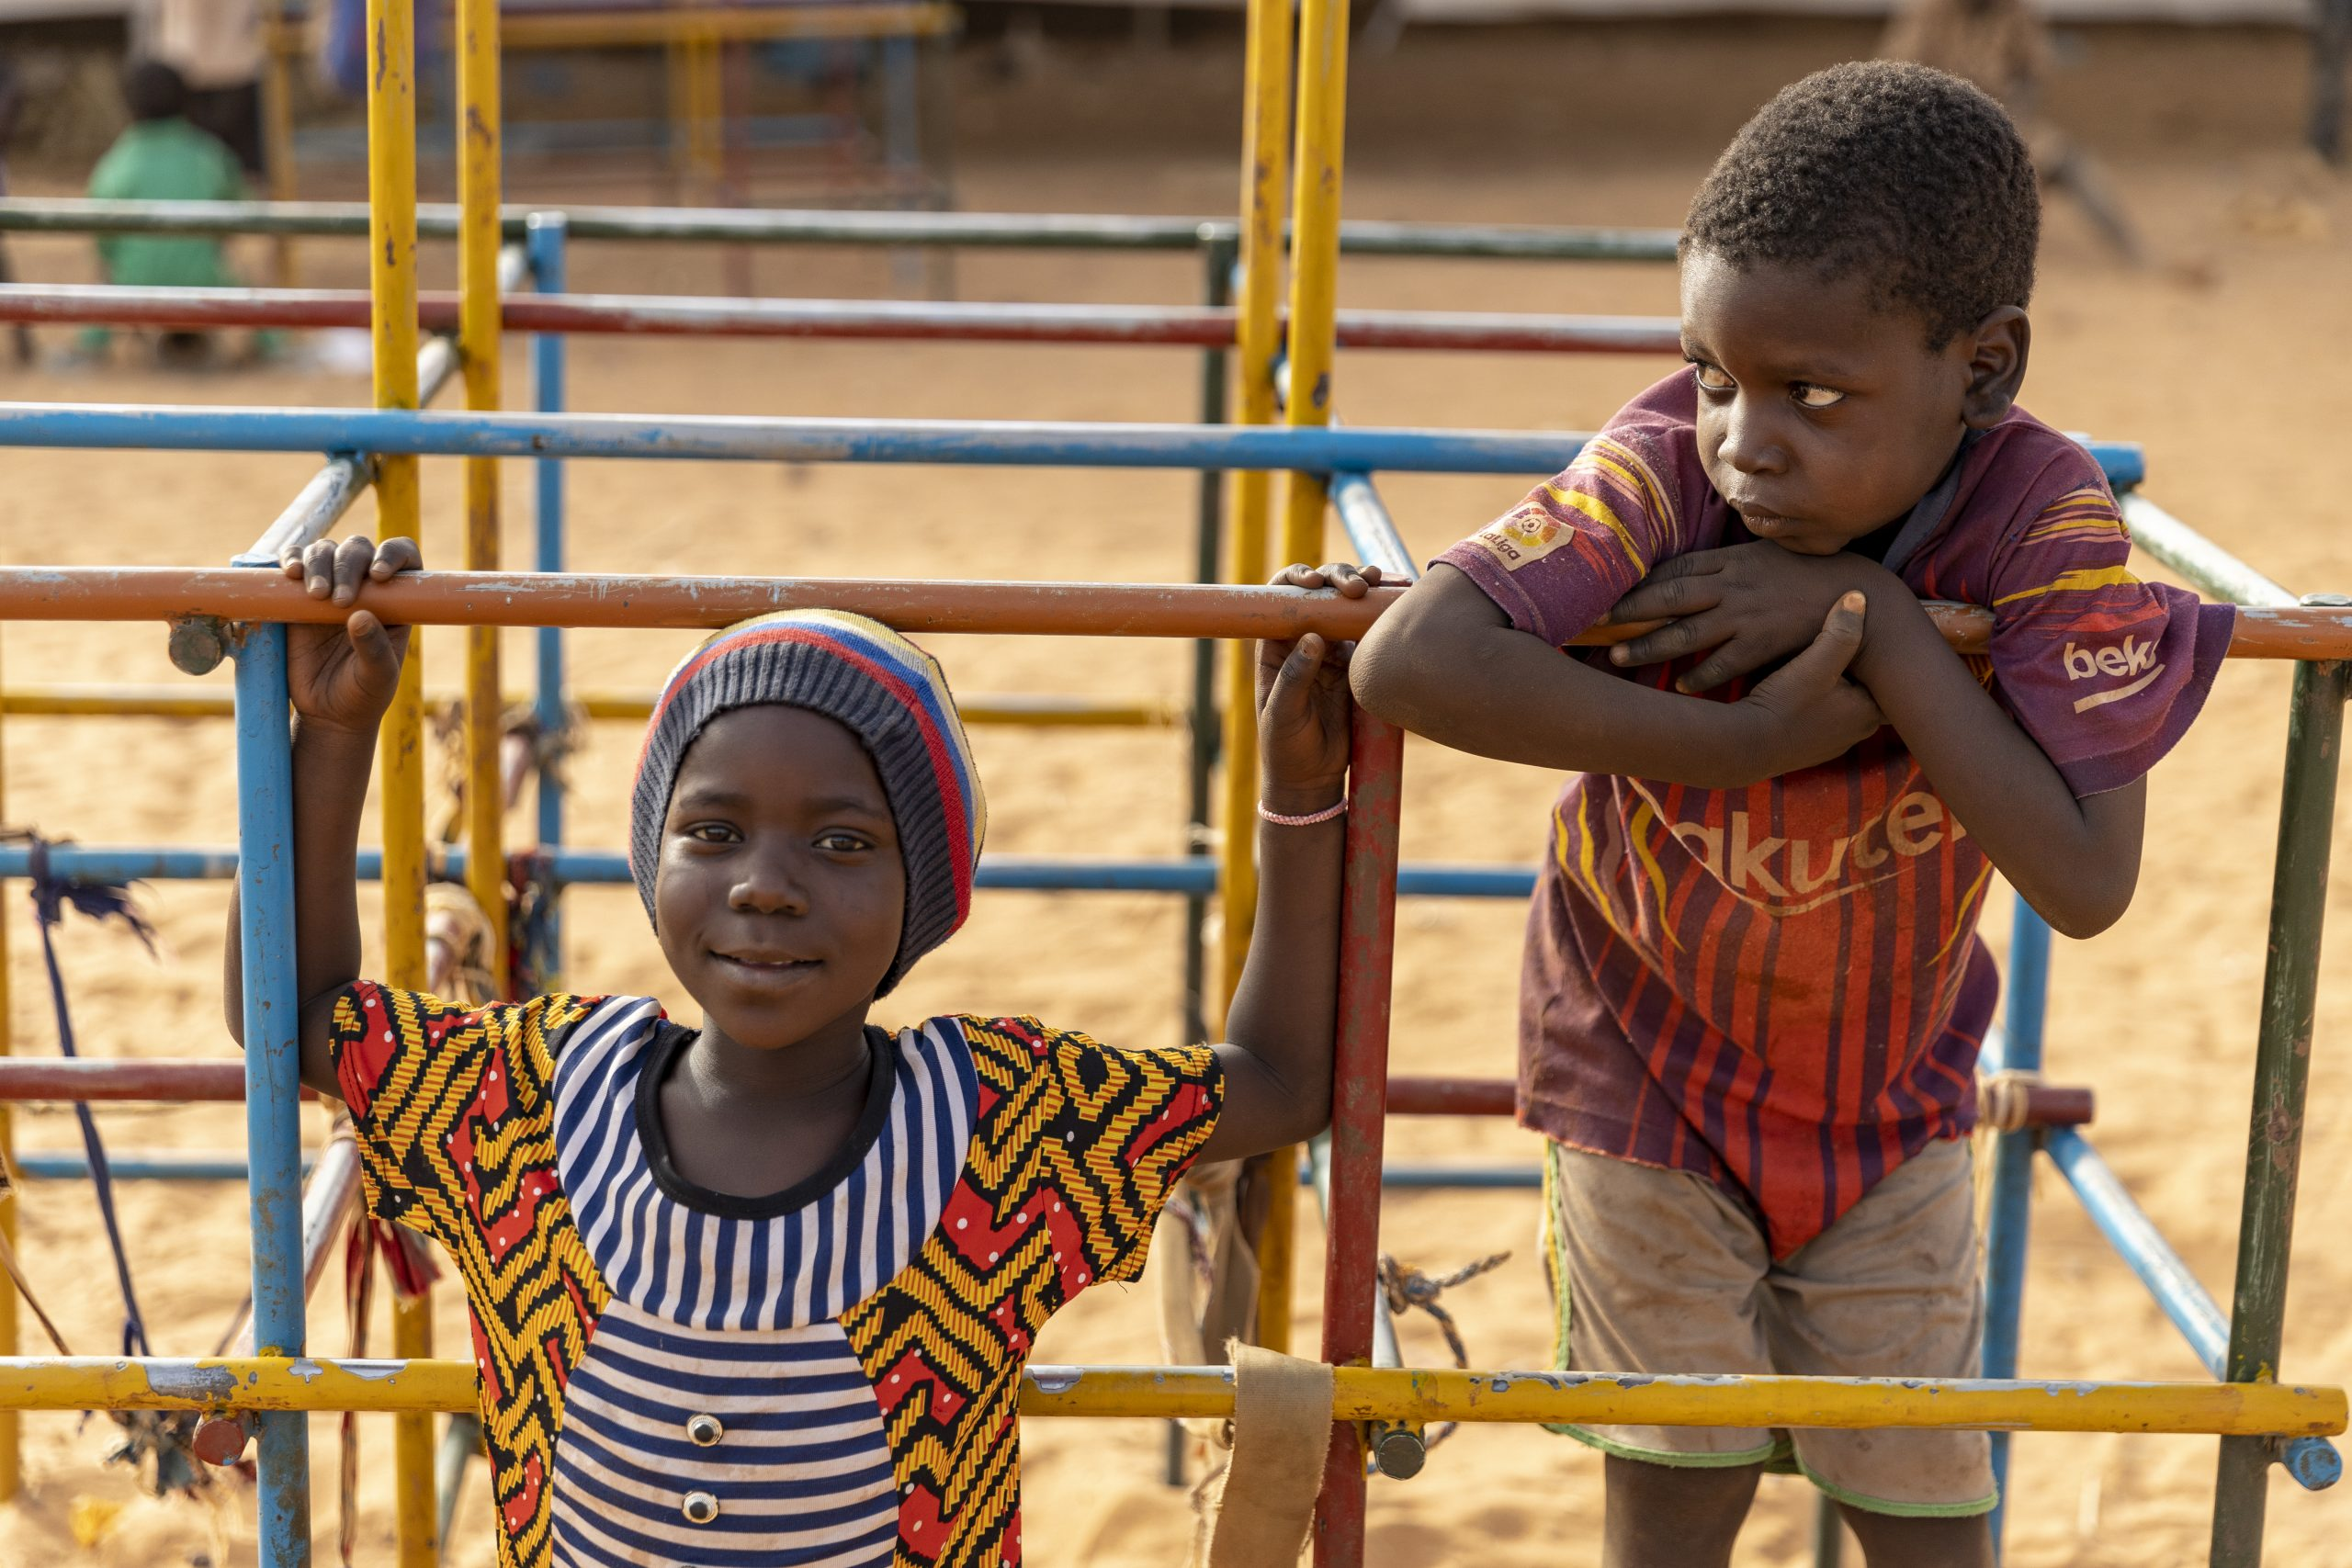 3 March 2020 - Kaya, Burkina Faso. Children playing in a playground set up by UNICEF in Bolle Idps site in Kaya.  Since the beginning of 2019, an intensification of attacks in Burkina Faso has provoked a rapid increase in the number of internally displaced persons (IDPs). More than 80,000 were displaced in the commune of Kaya (March 2020).   Burkina Faso is currently the world's fastest-growing displacement crisis with close to 840,000 people have been displaced by conflict and drought in the last 16 months (March 2020).  Despite the increased deployment of security forces, armed groups continue to wreak havoc in the country's Centre Nord and Sahel regions, attacking police and military, civilians, schools, health centres, teachers and health workers alike. UNHCR staff are regularly hearing harrowing accounts from survivors on the run. People speak in horrifying details of attacks on their villages, where men and boys are killed, women raped, homes pillaged and schools along with other infrastructure are destroyed.  UNICEF / Aurélia Rusek